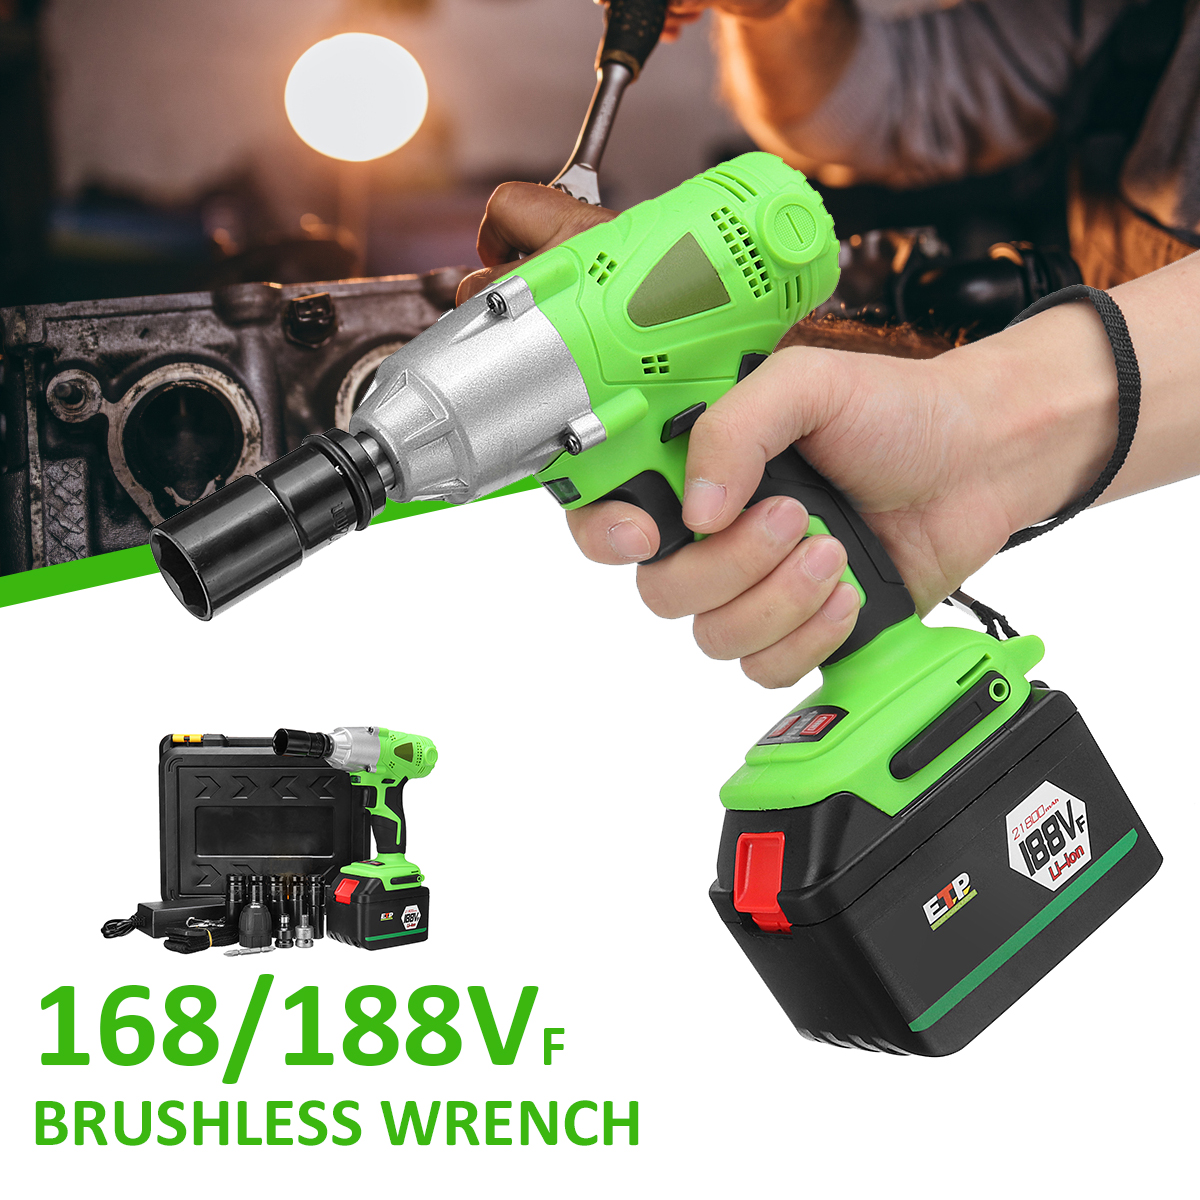 98/128VF Brushless Cordless Electric Impact Wrench Driver Drill Screwdriver Socket 10MM LED Light